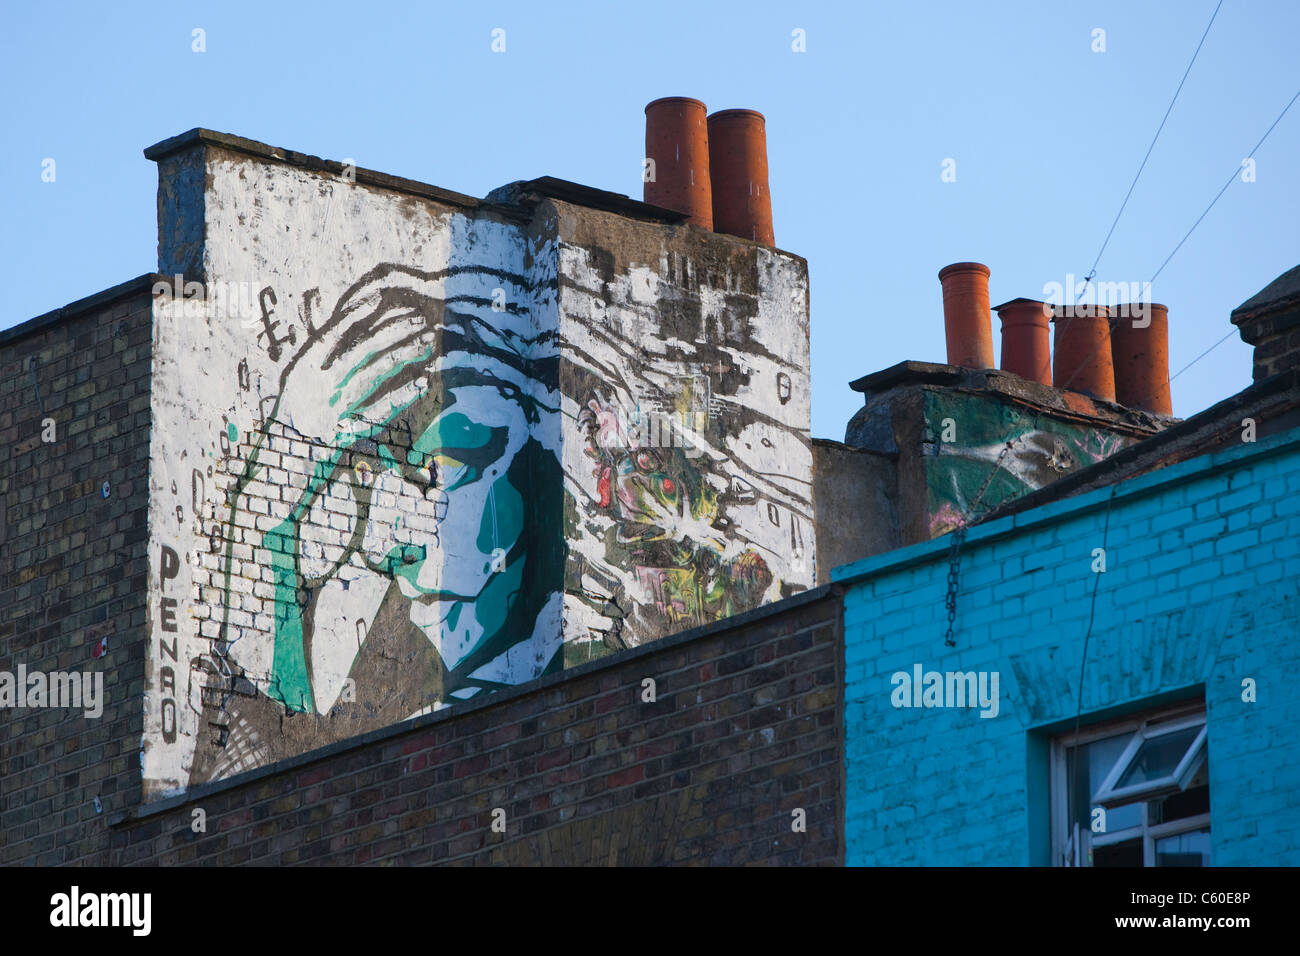 Colourfully decorated roof in Camden High Street in the Camden Market area, London - Stock Image